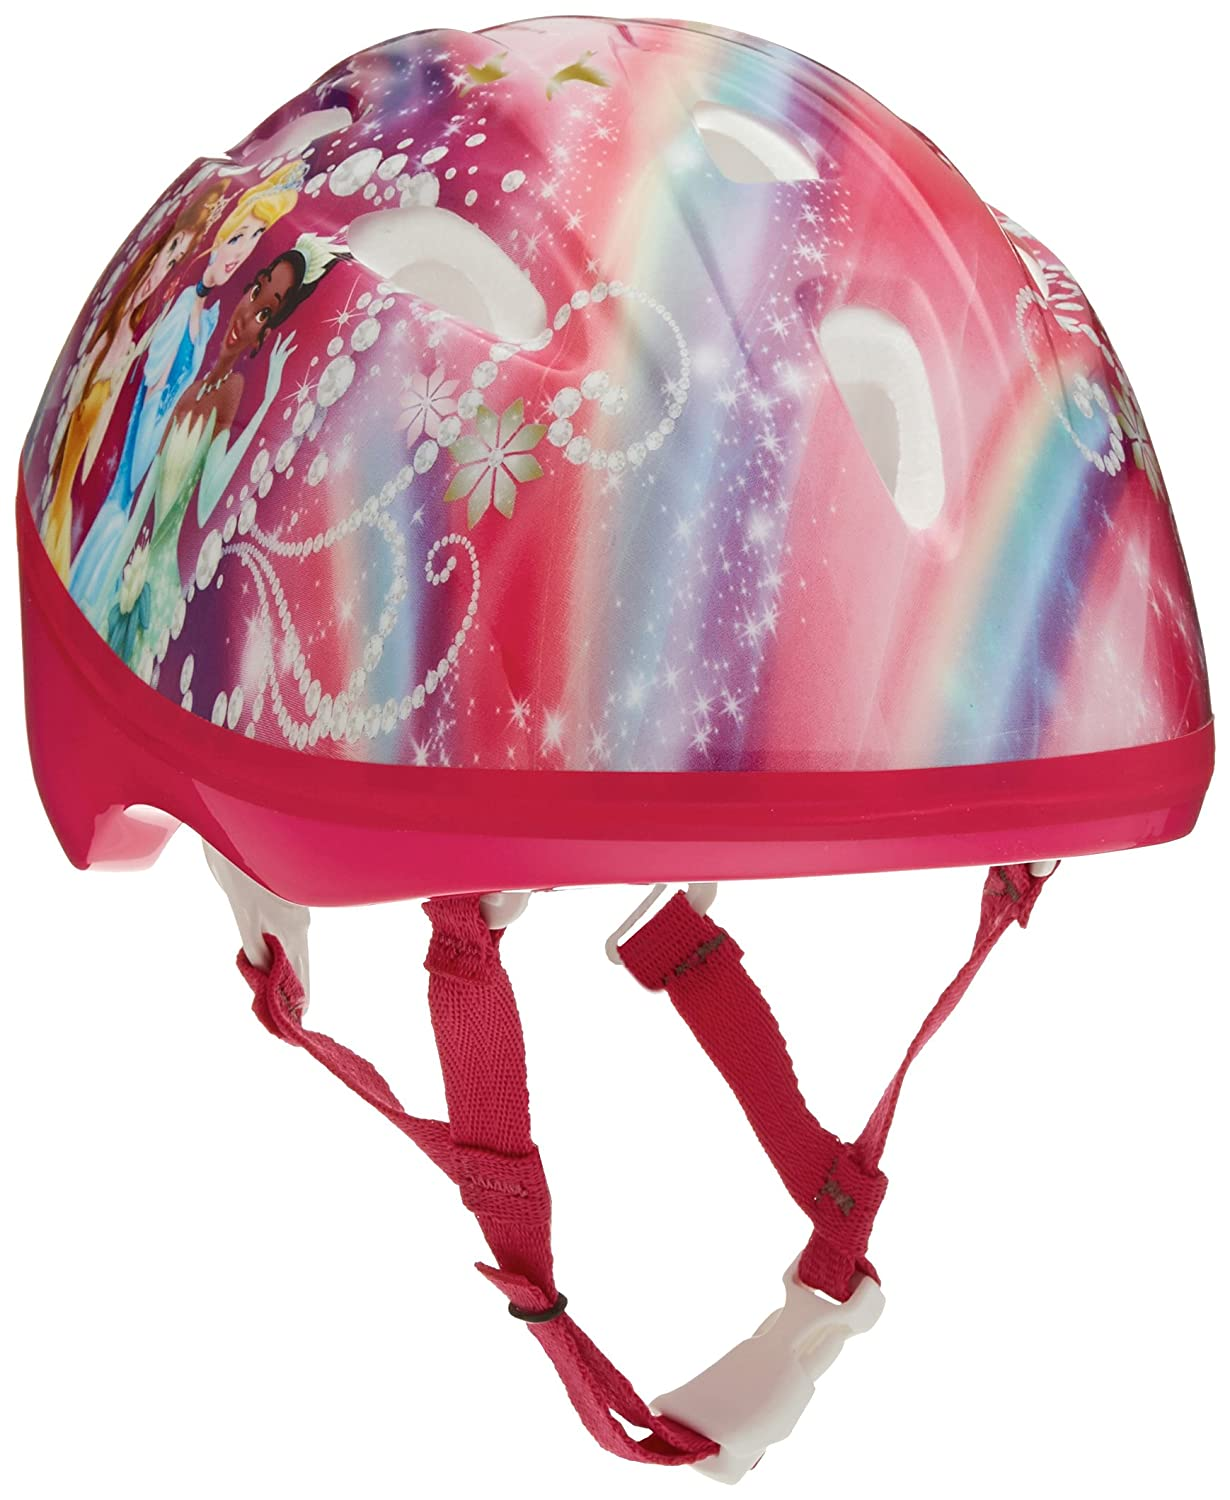 Bell Toddler's Princess Fairy-Tale Explorer Bike Helmet 7047465